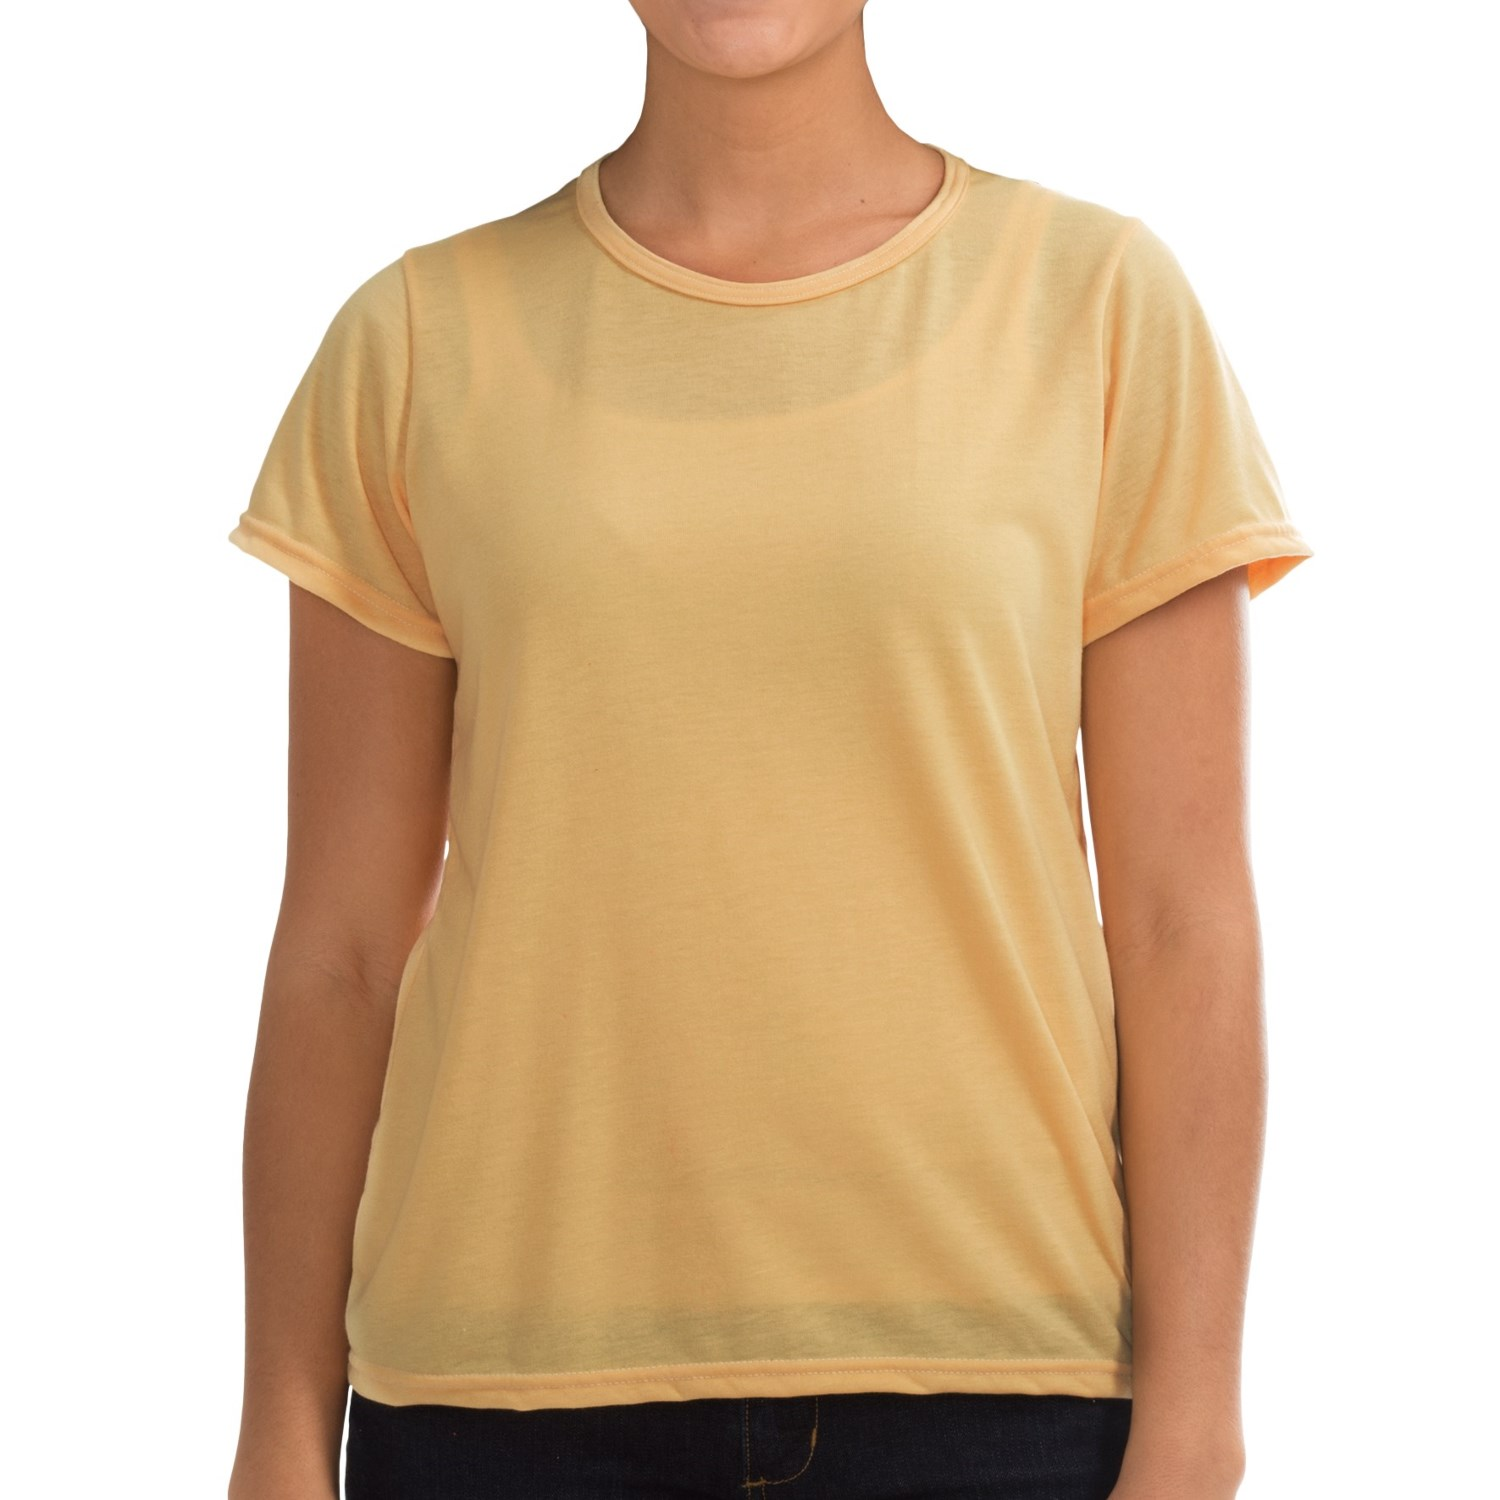 Wickers lightweight base layer t shirt for women save 46 for Womens base layer shirt